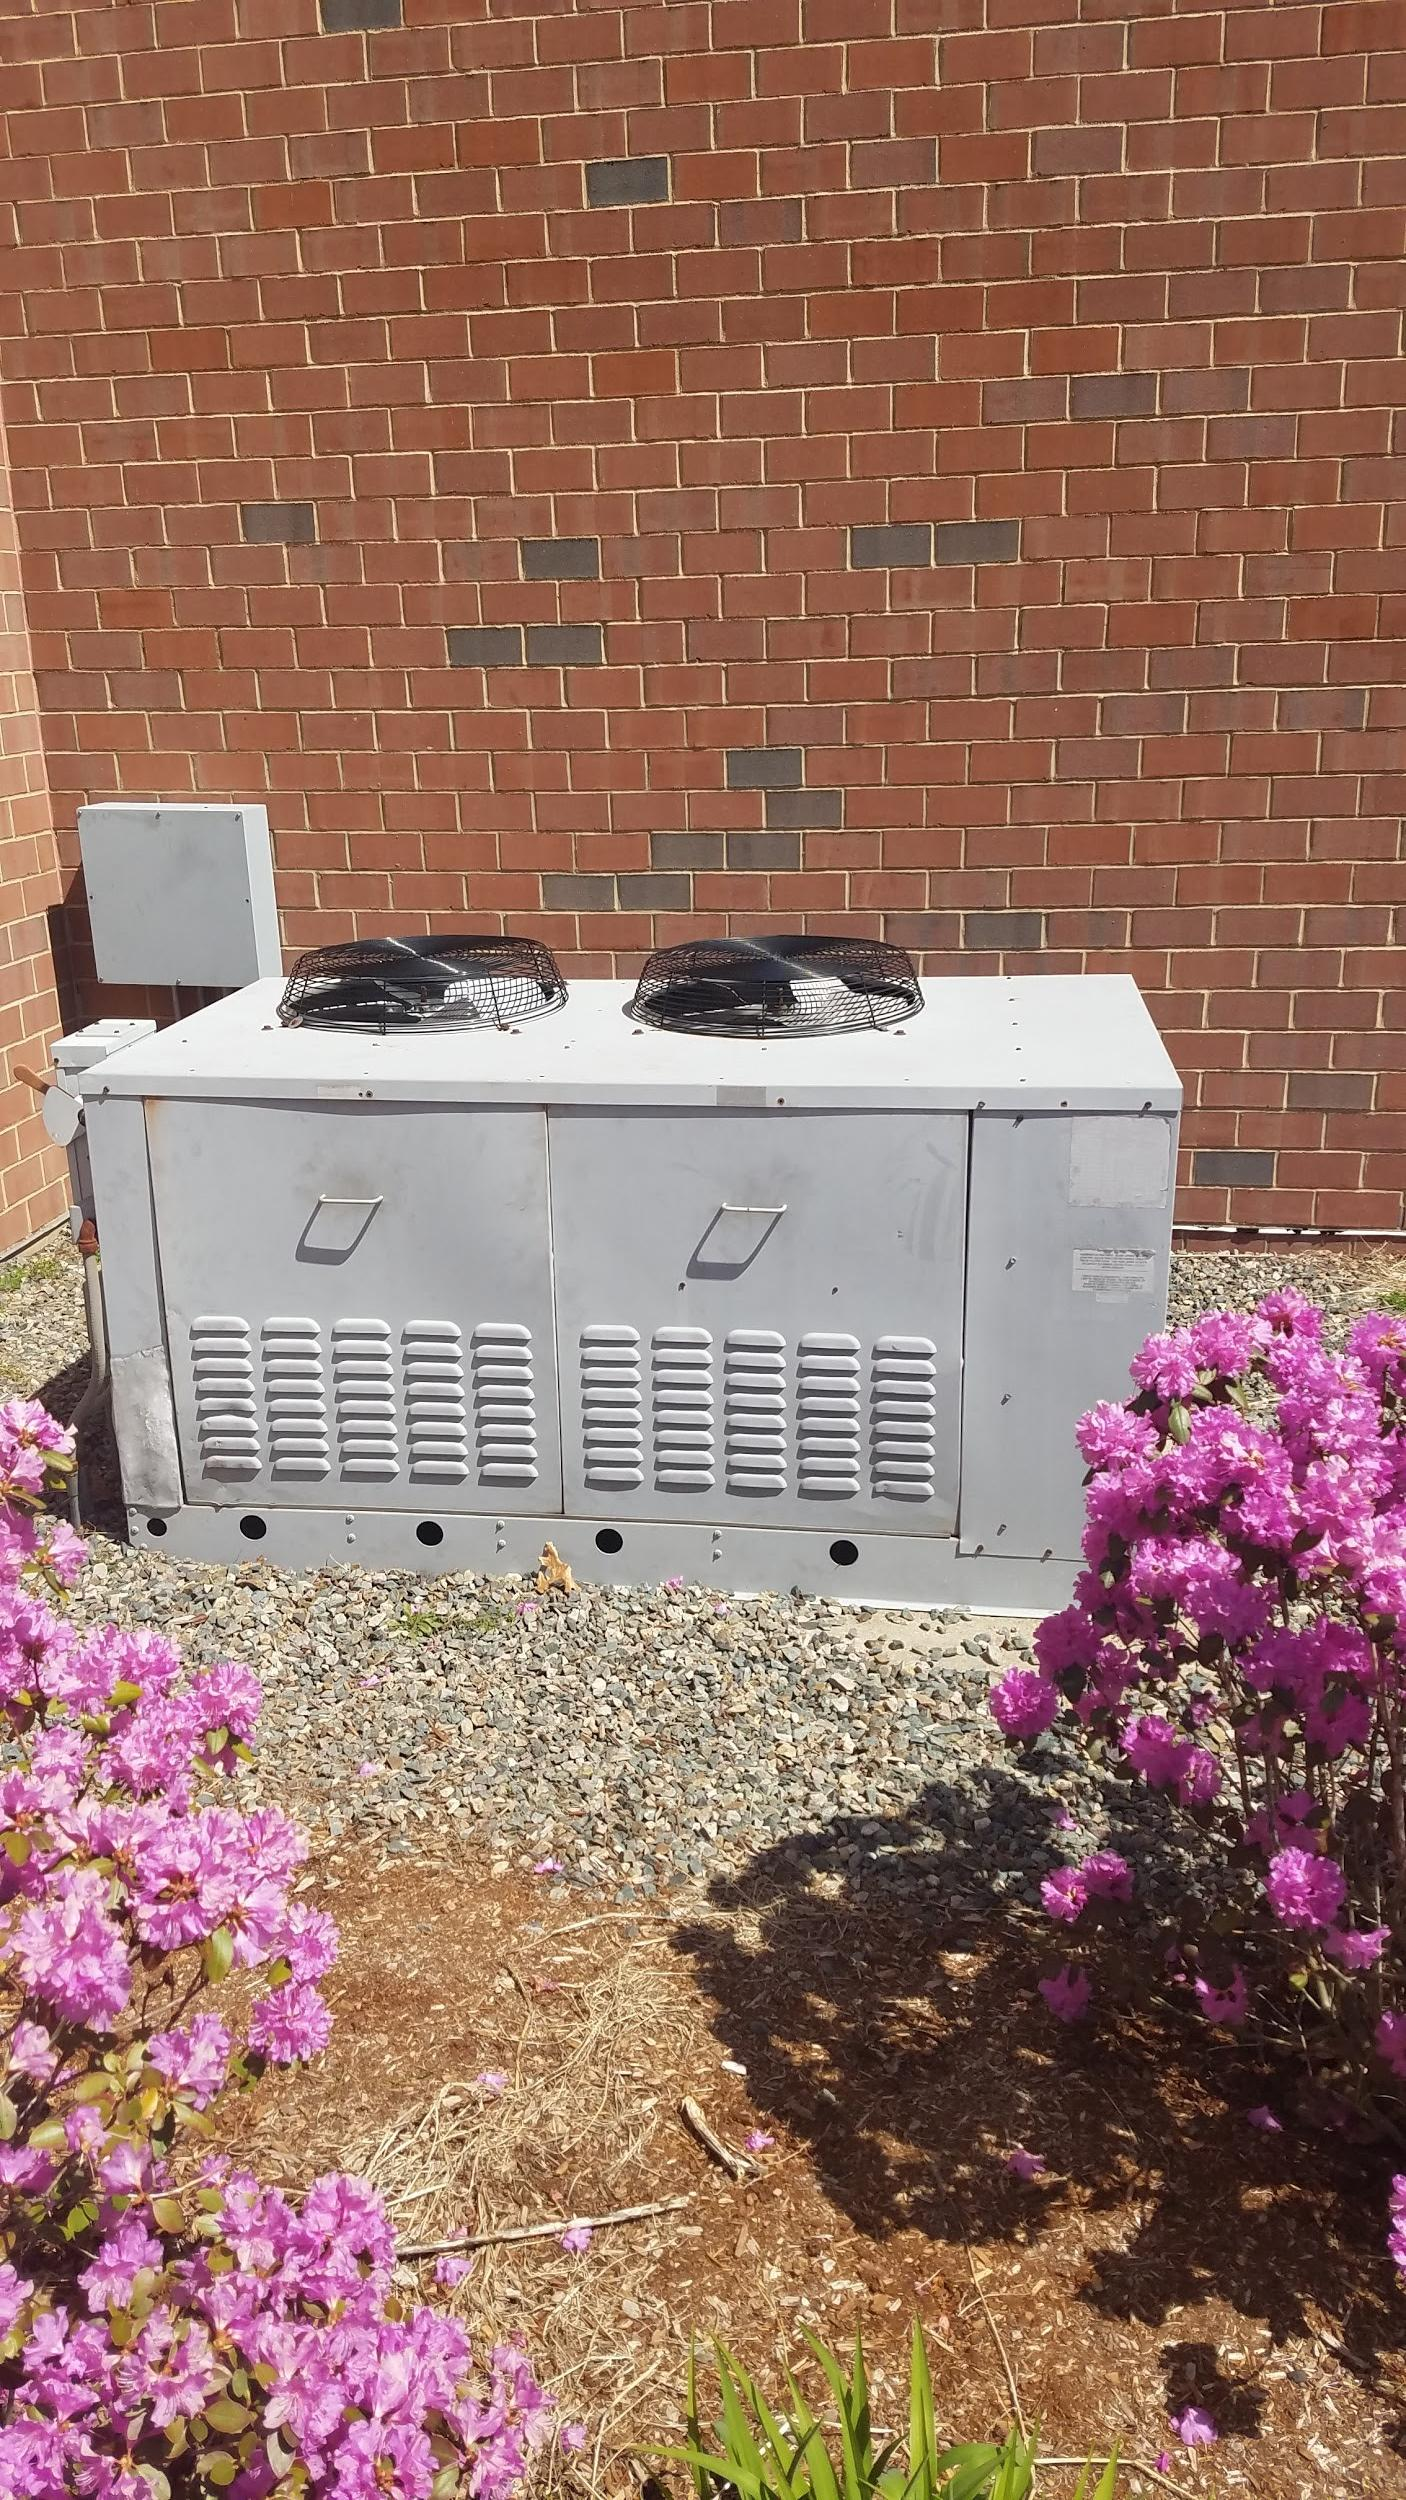 Westwood High School gets an outdoor condenser unit upgraded for cafeteria walk-in cooler system.